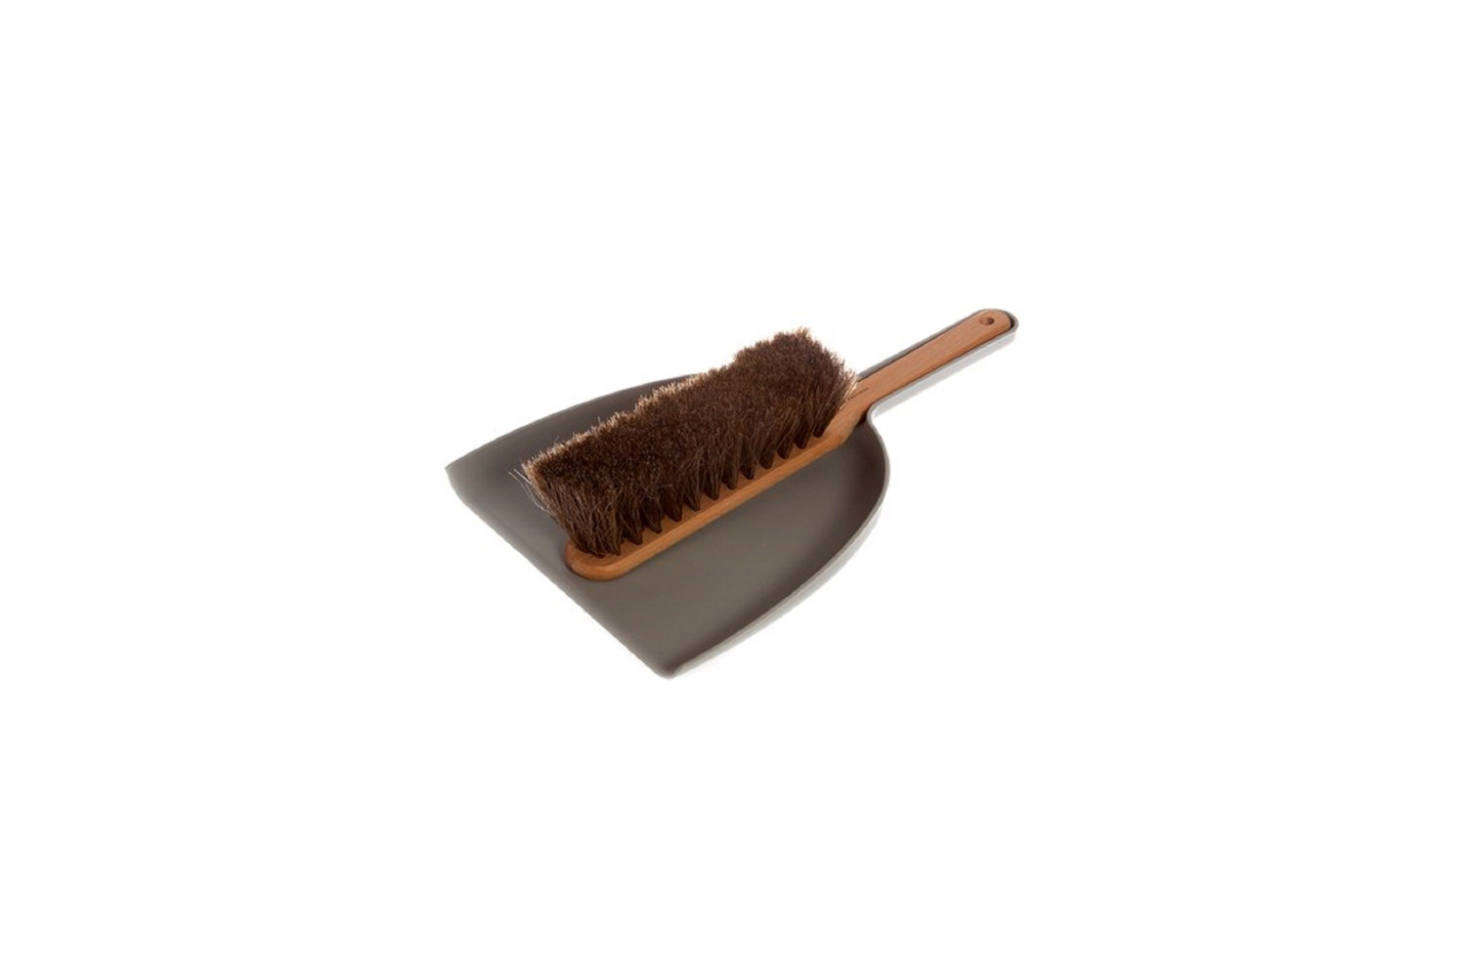 Another classic from Iris Hantverk is the Dustpan and Brush Set, shown here in Grey, which happens to be available on Amazon too. The brush is handmade with horsehair by the visually impaired at the Iris Hantverk studio outside of Stockholm and the dustpan is plastic; $44.97